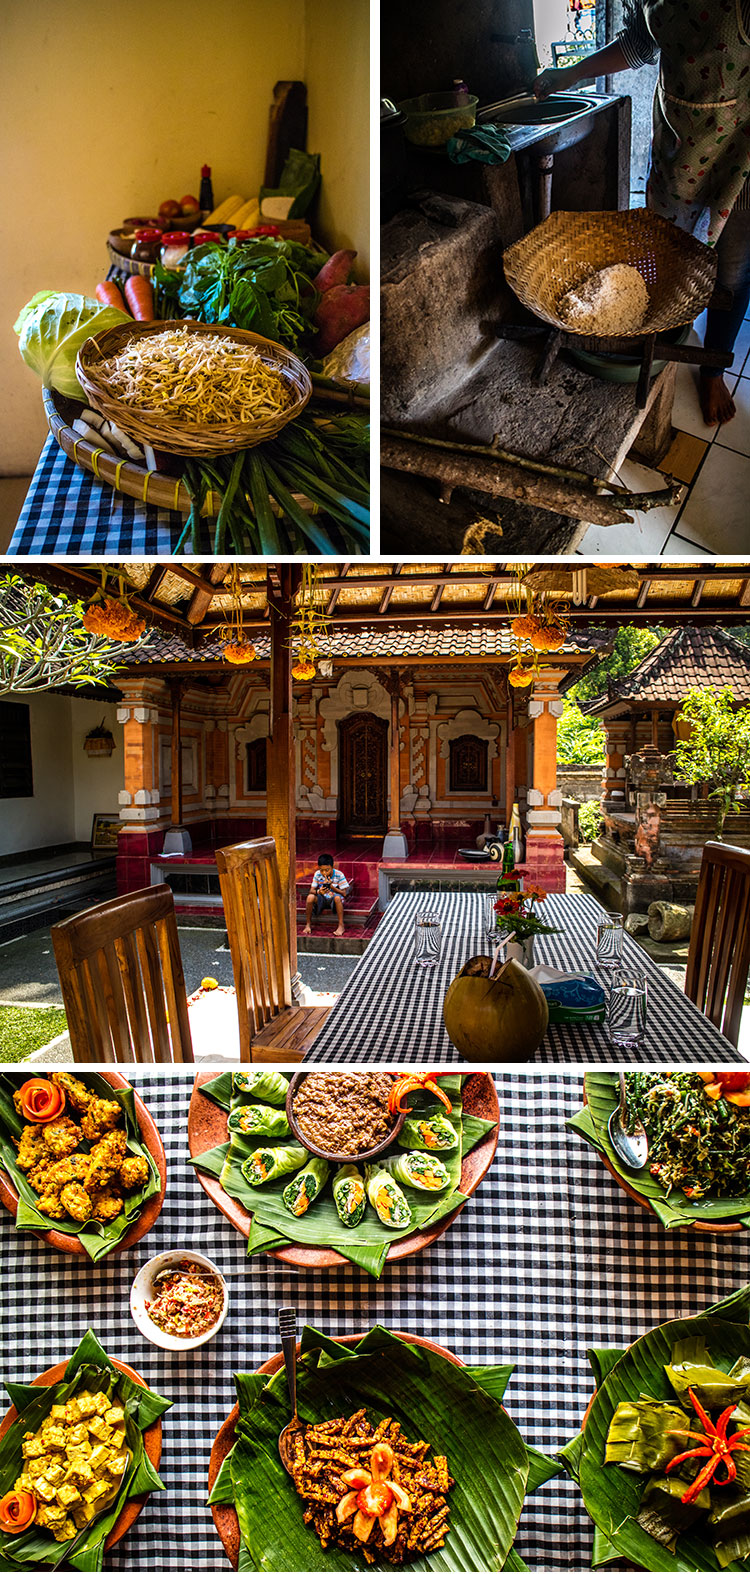 A Balinese cooking class with Putu from Traveling Spoon, pictures of ingredients, the family compound and finished meal.